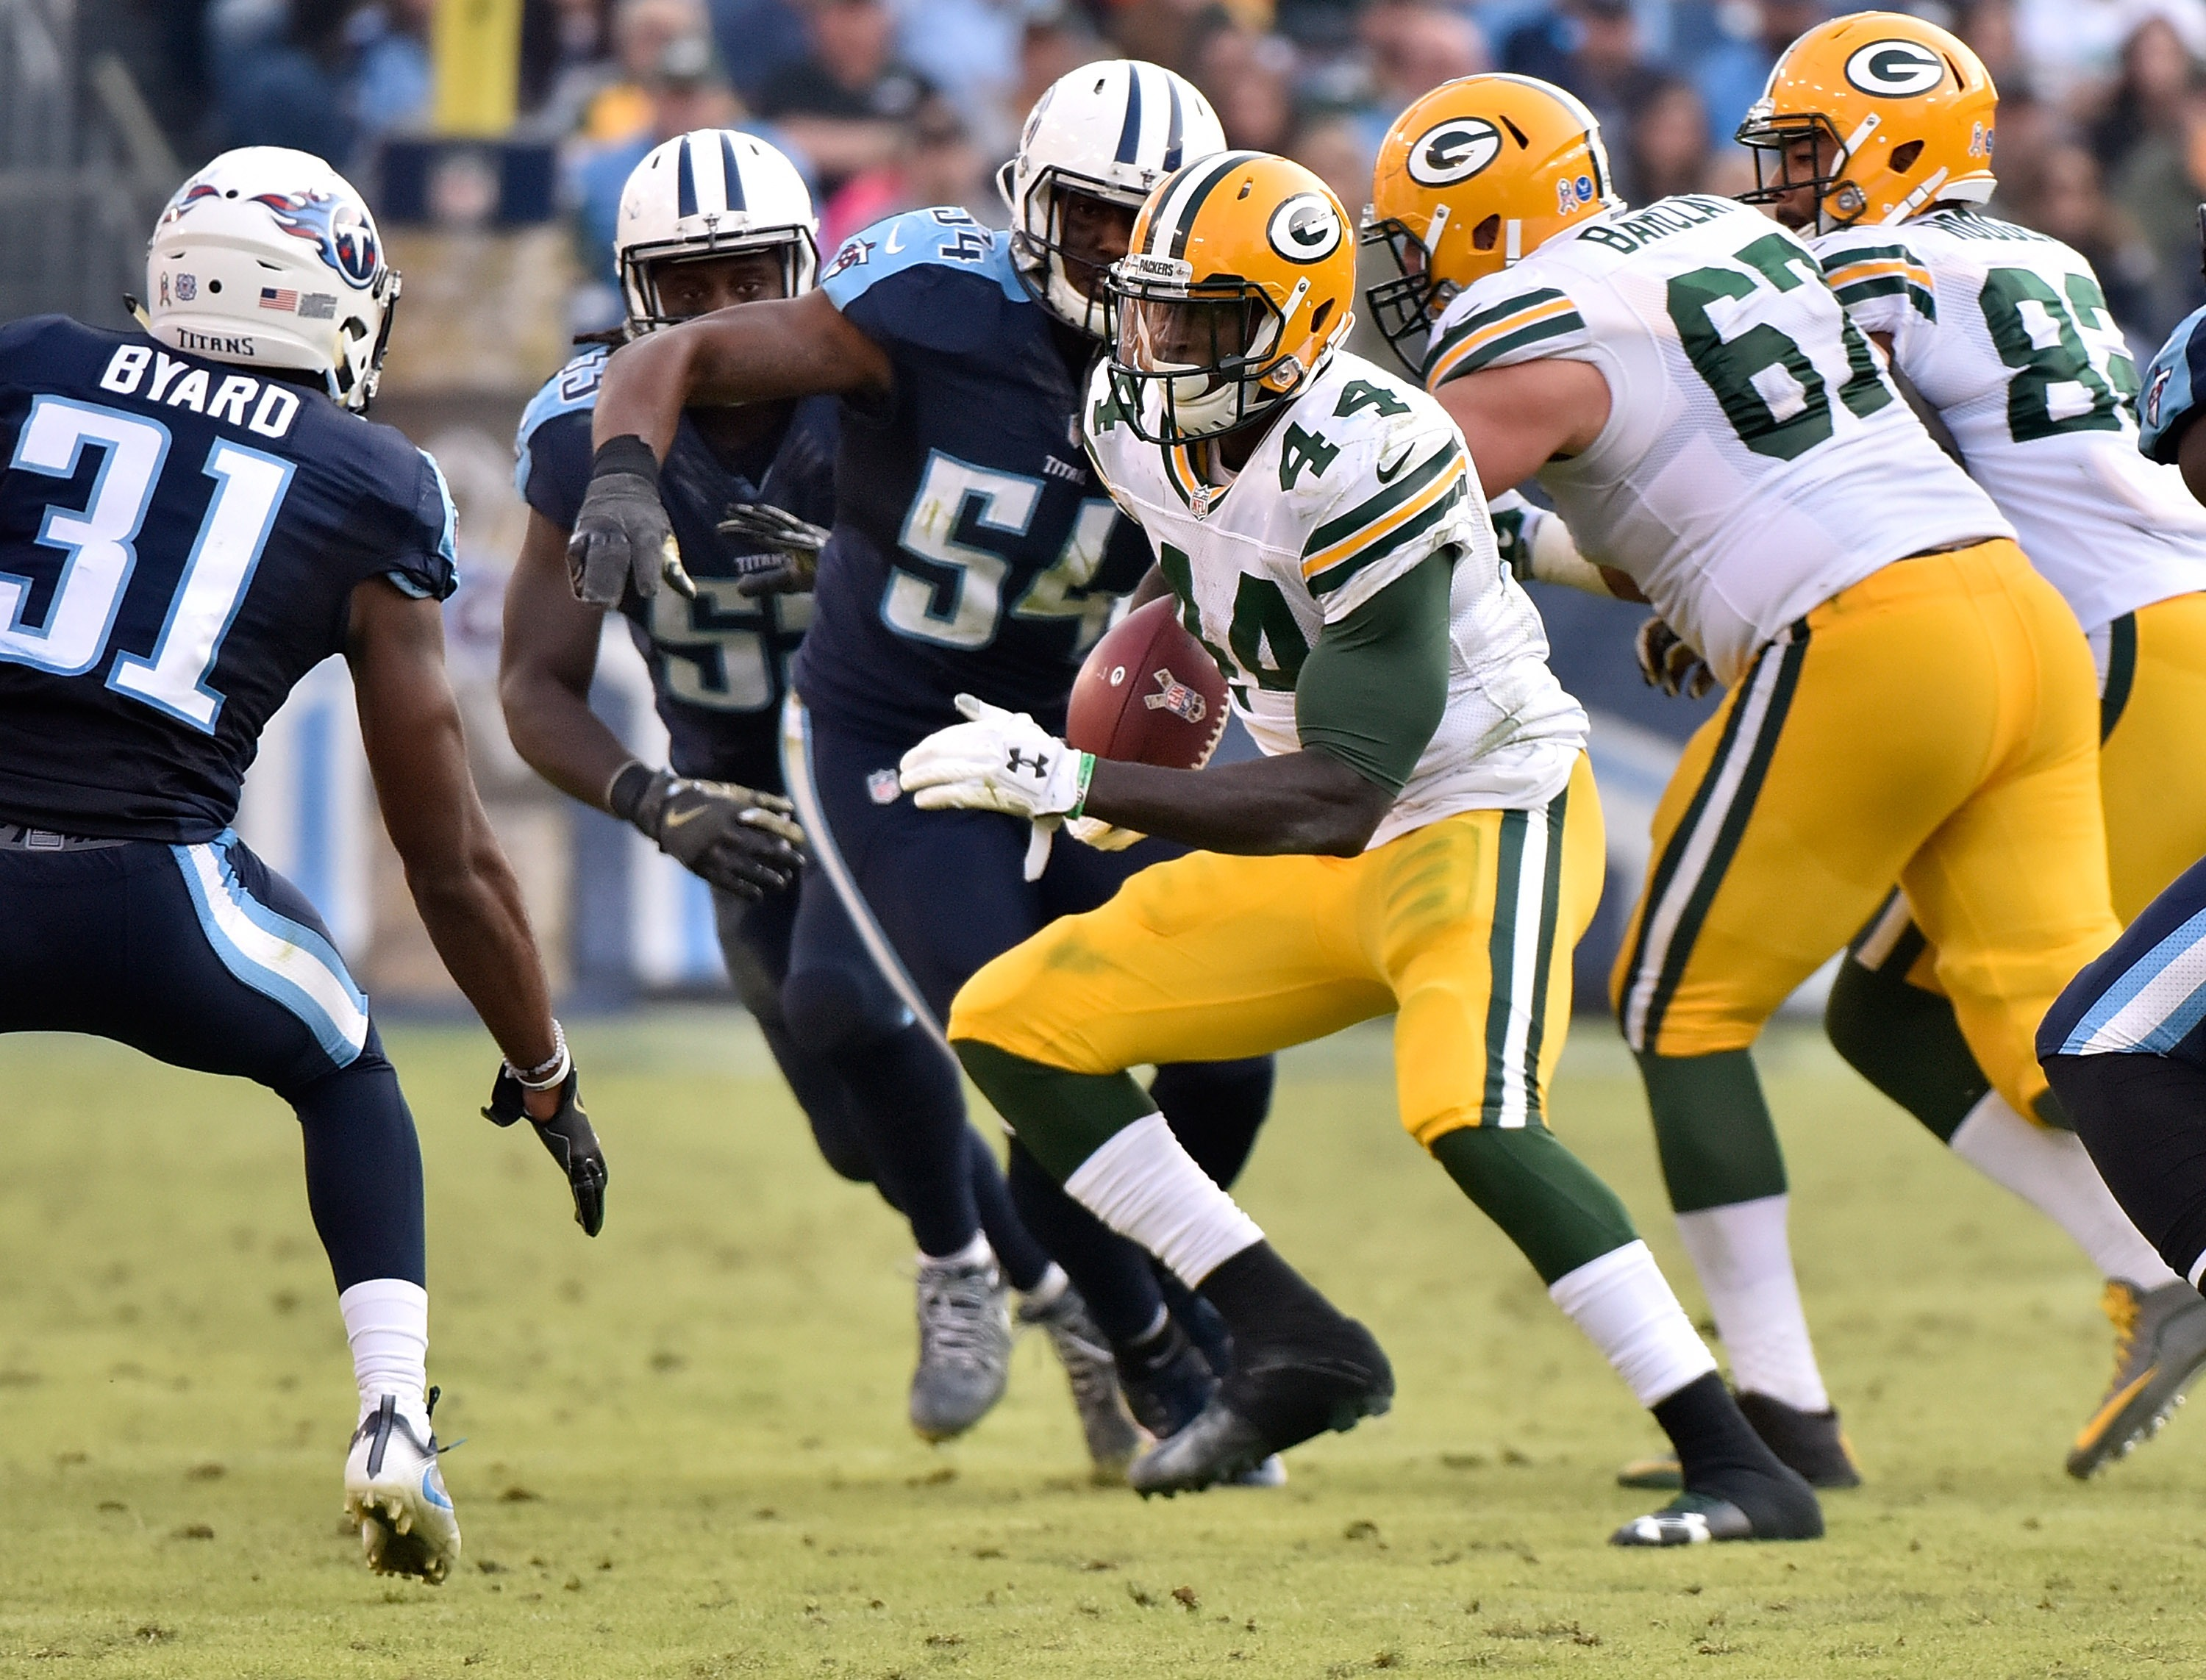 James Starks returned for the Green Bay Packers in Week 10 after missing four games because of a knee injury. (Getty Images)